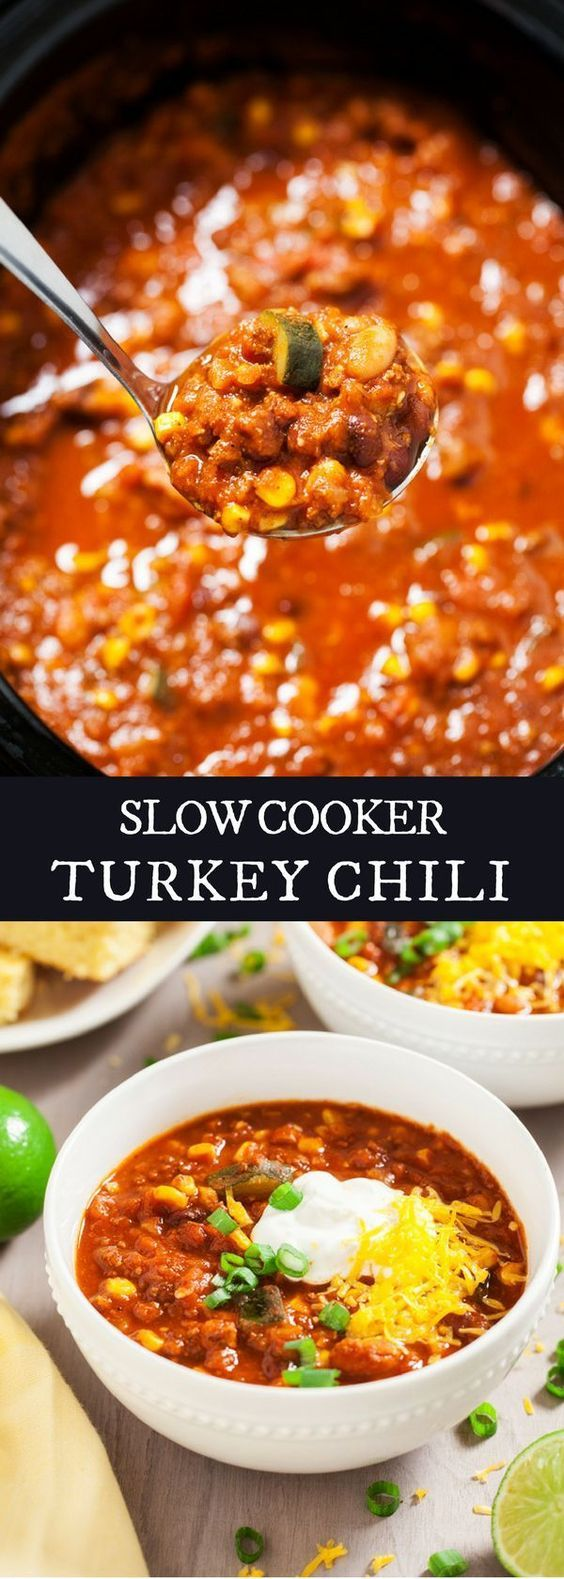 Slow Cooker Turkey Chili | Recipe | Slow cooker turkey ...